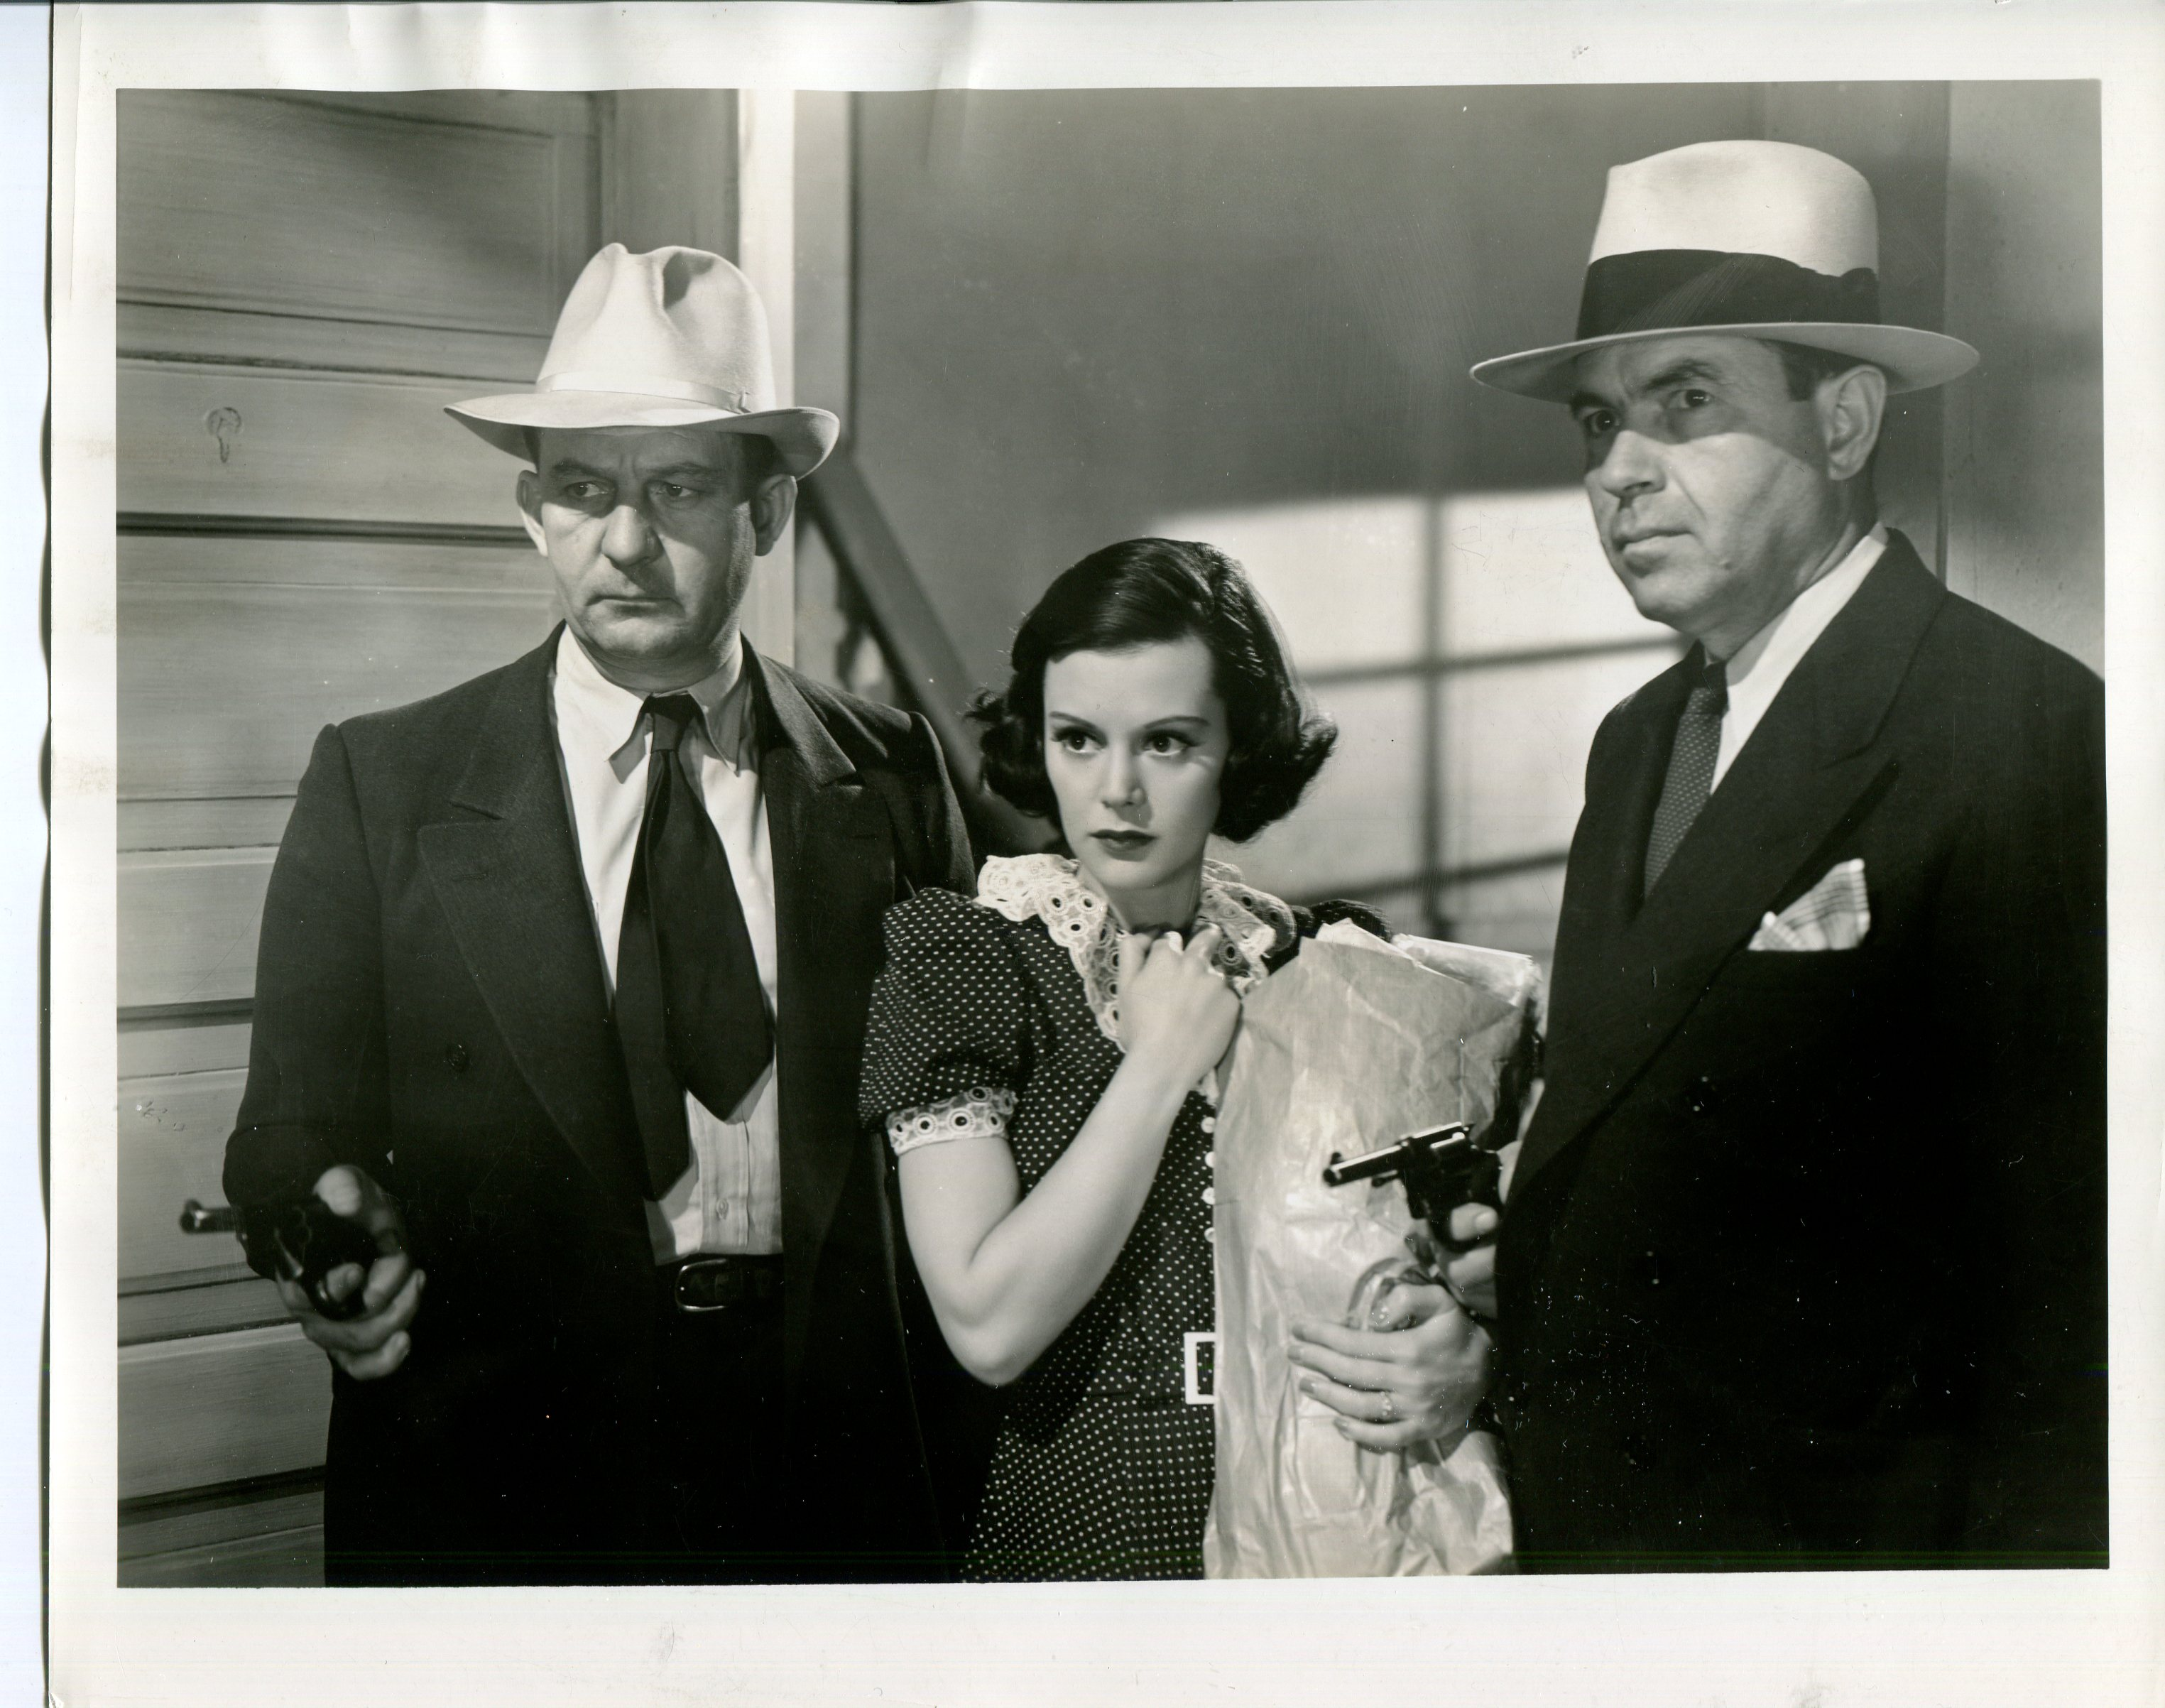 Ben Hendricks Jr., Helen Mack, and Jack Rube Clifford in I Promise to Pay (1937)